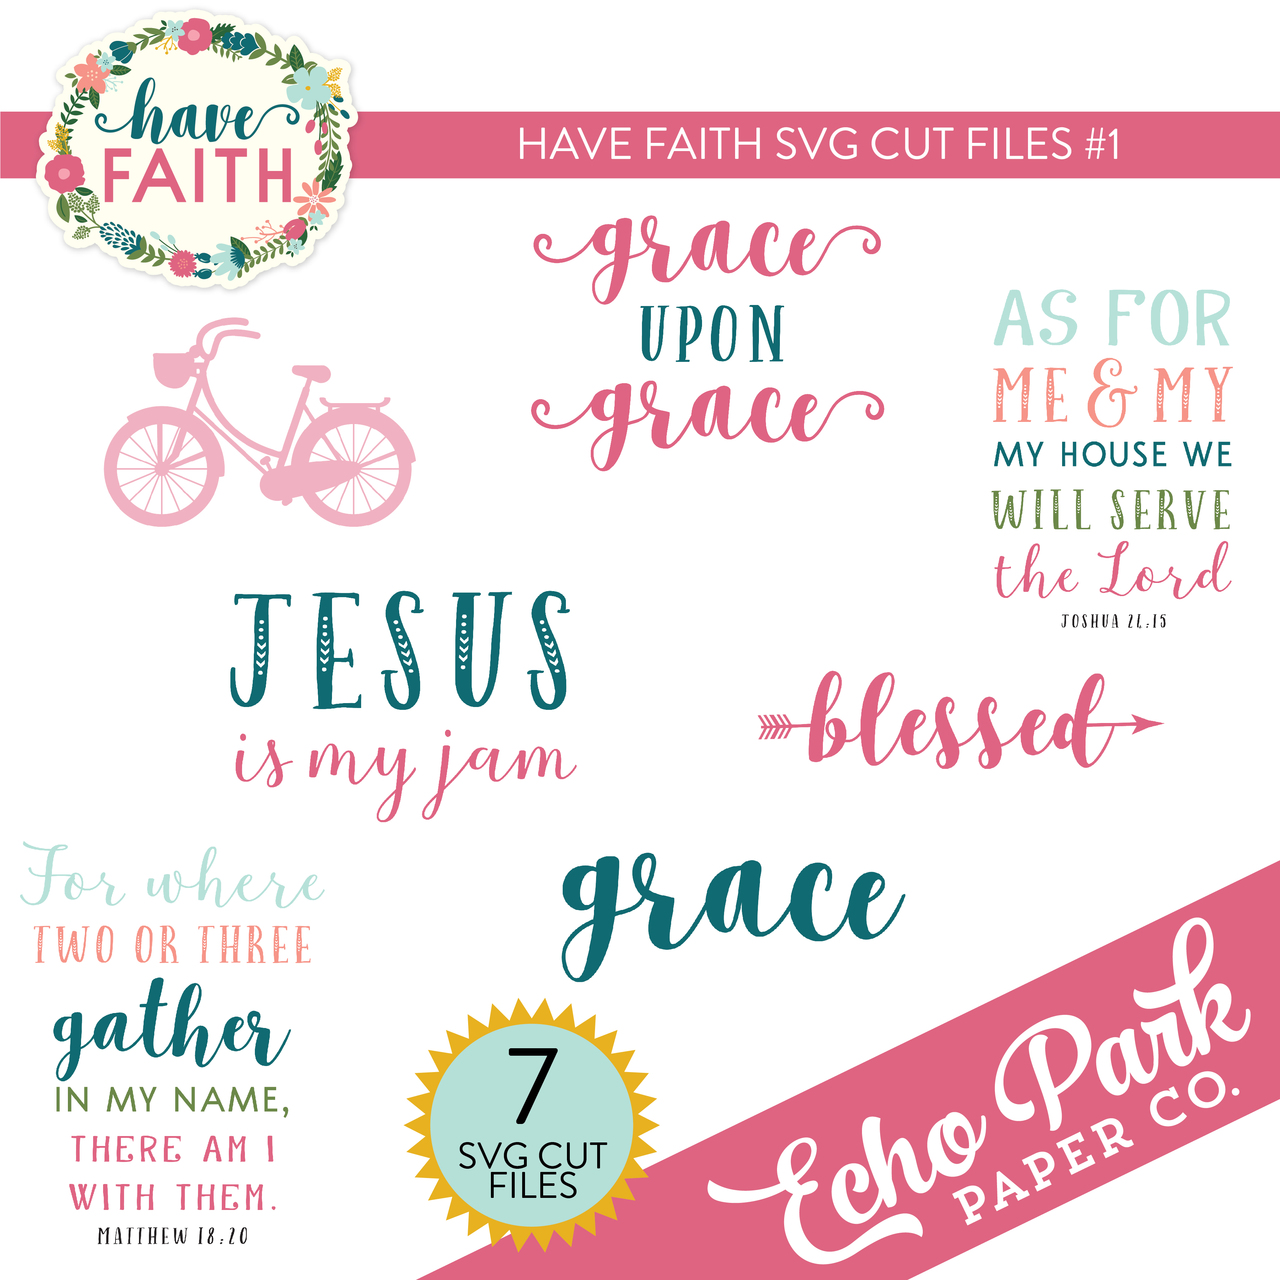 Have Faith Svg Cut Files 1 Snap Click Supply Co